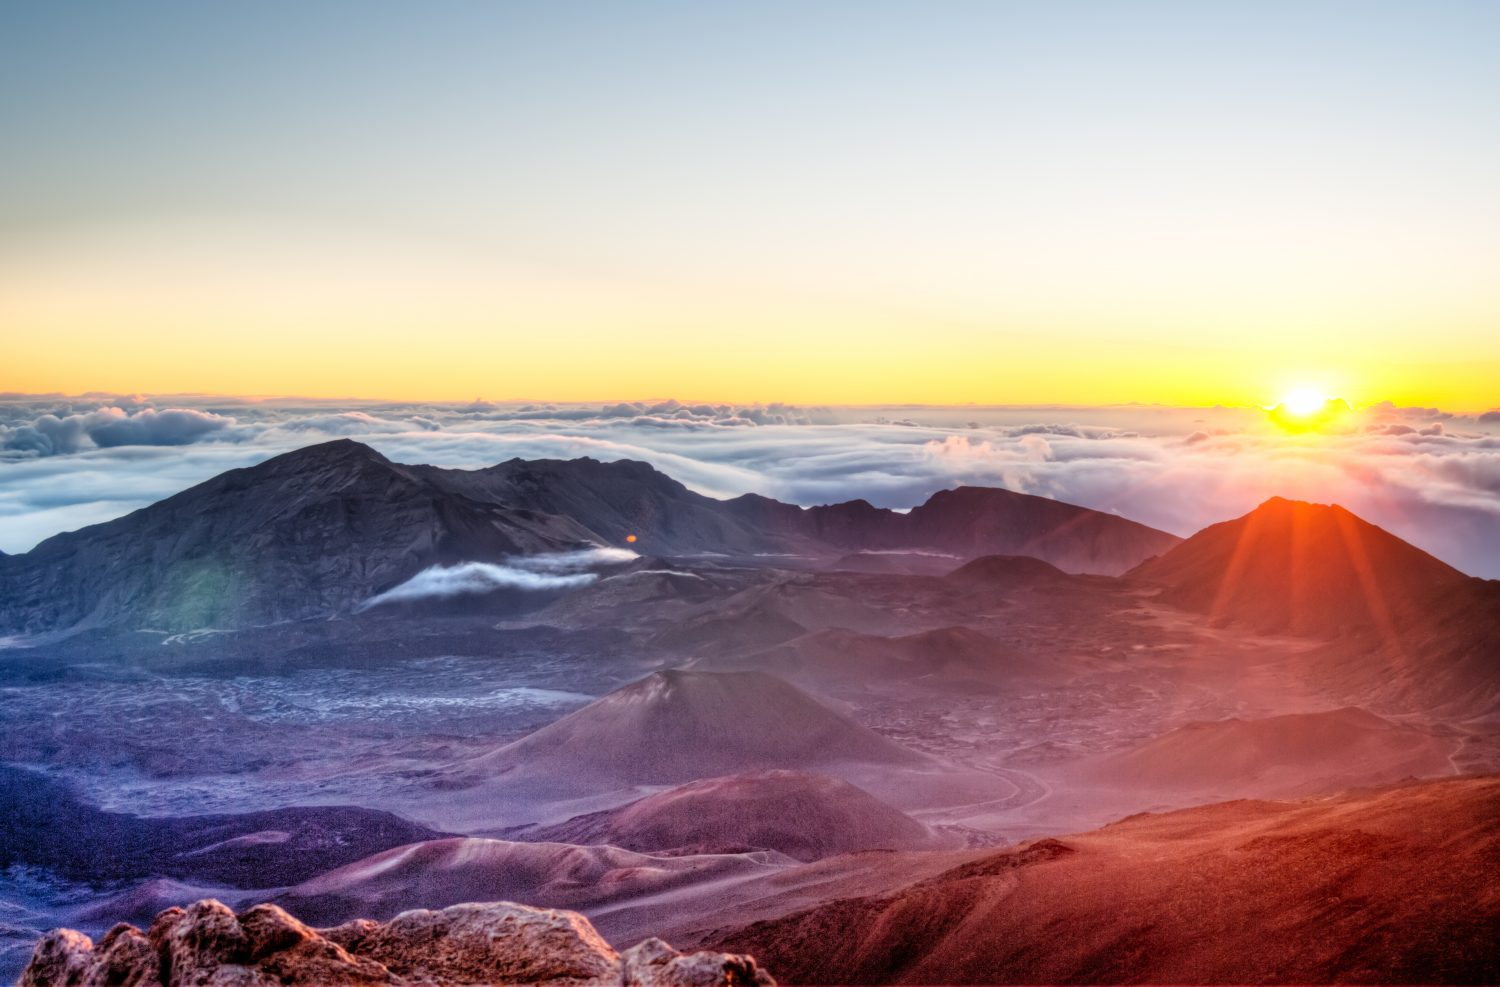 Sunrise over Haleakala volcano crater on Maui, Hawaii - things to do Maui